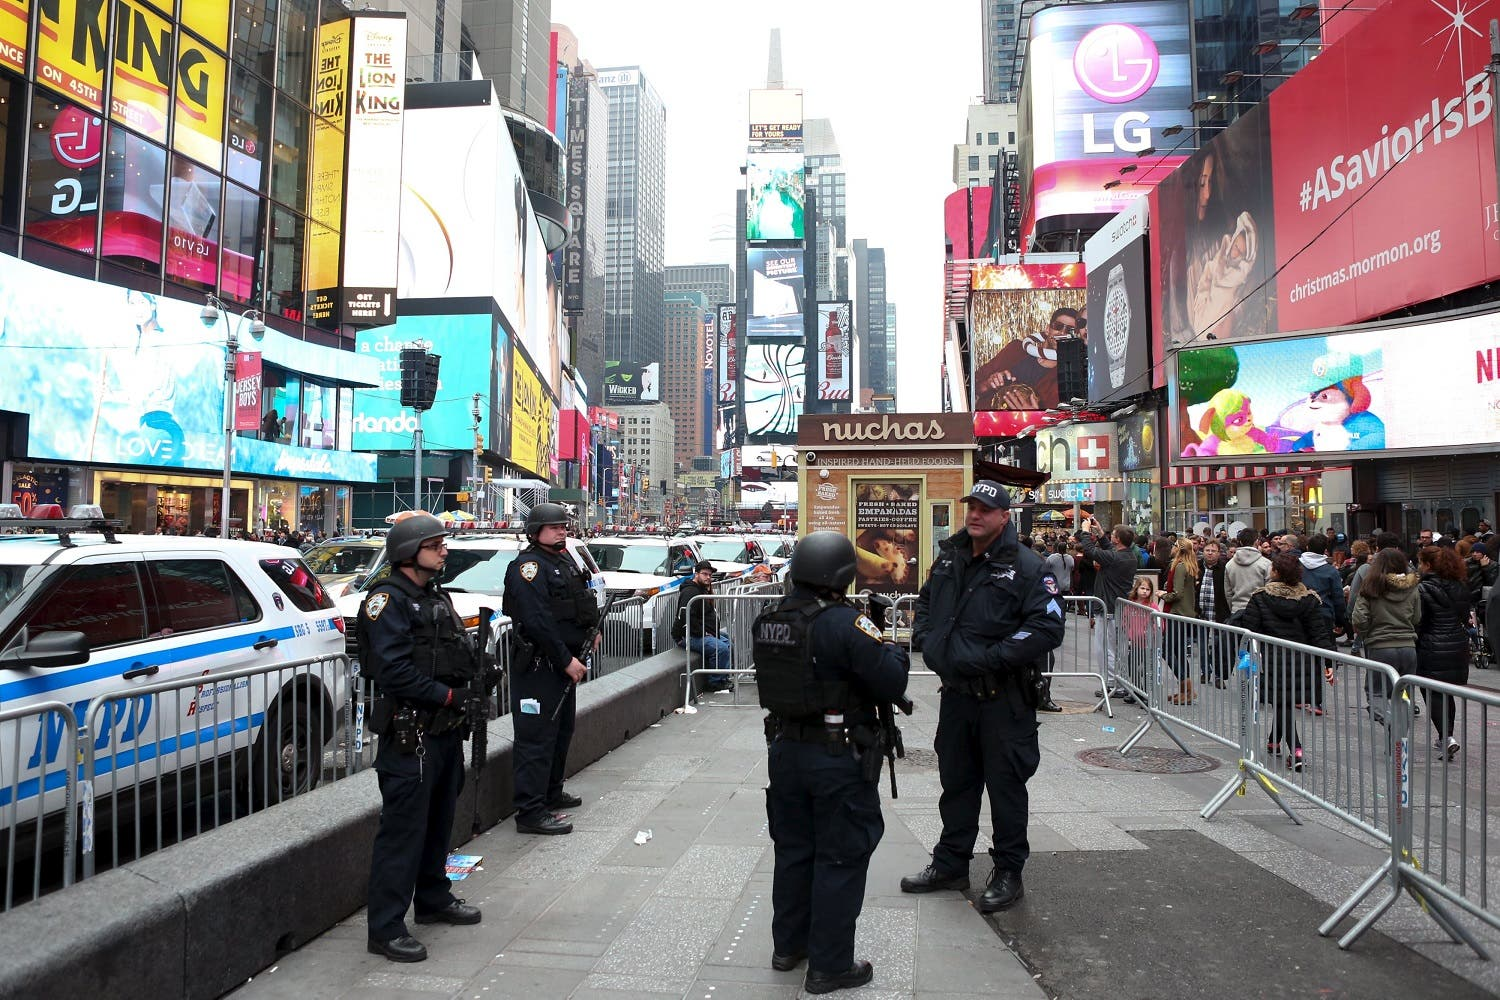 New York Police officers with rifles stand guard in Times Square in Manhattan. (Reuters)